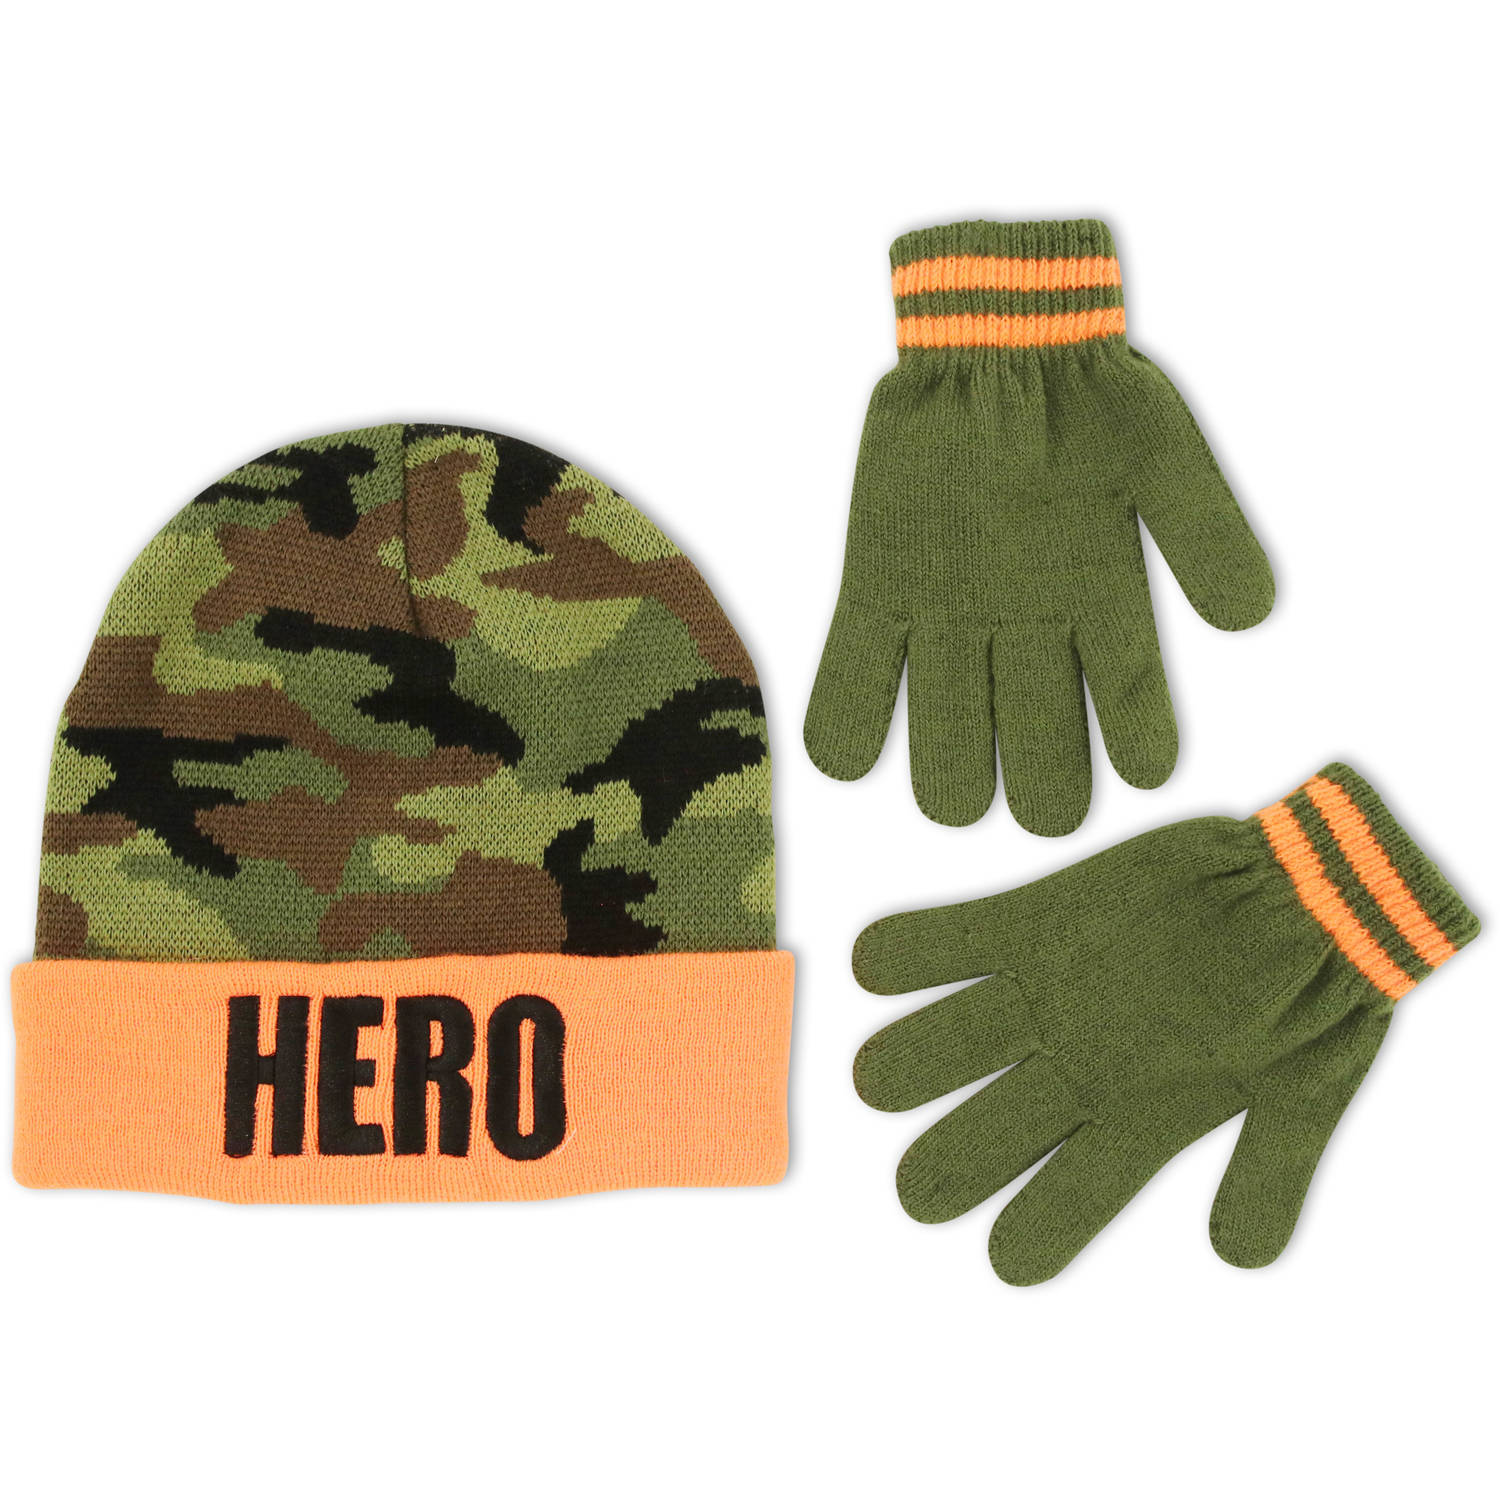 Image of ABG Accessories Big Boys Cuffed Beanie Winter Hat and Gloves Set, Age 7-10